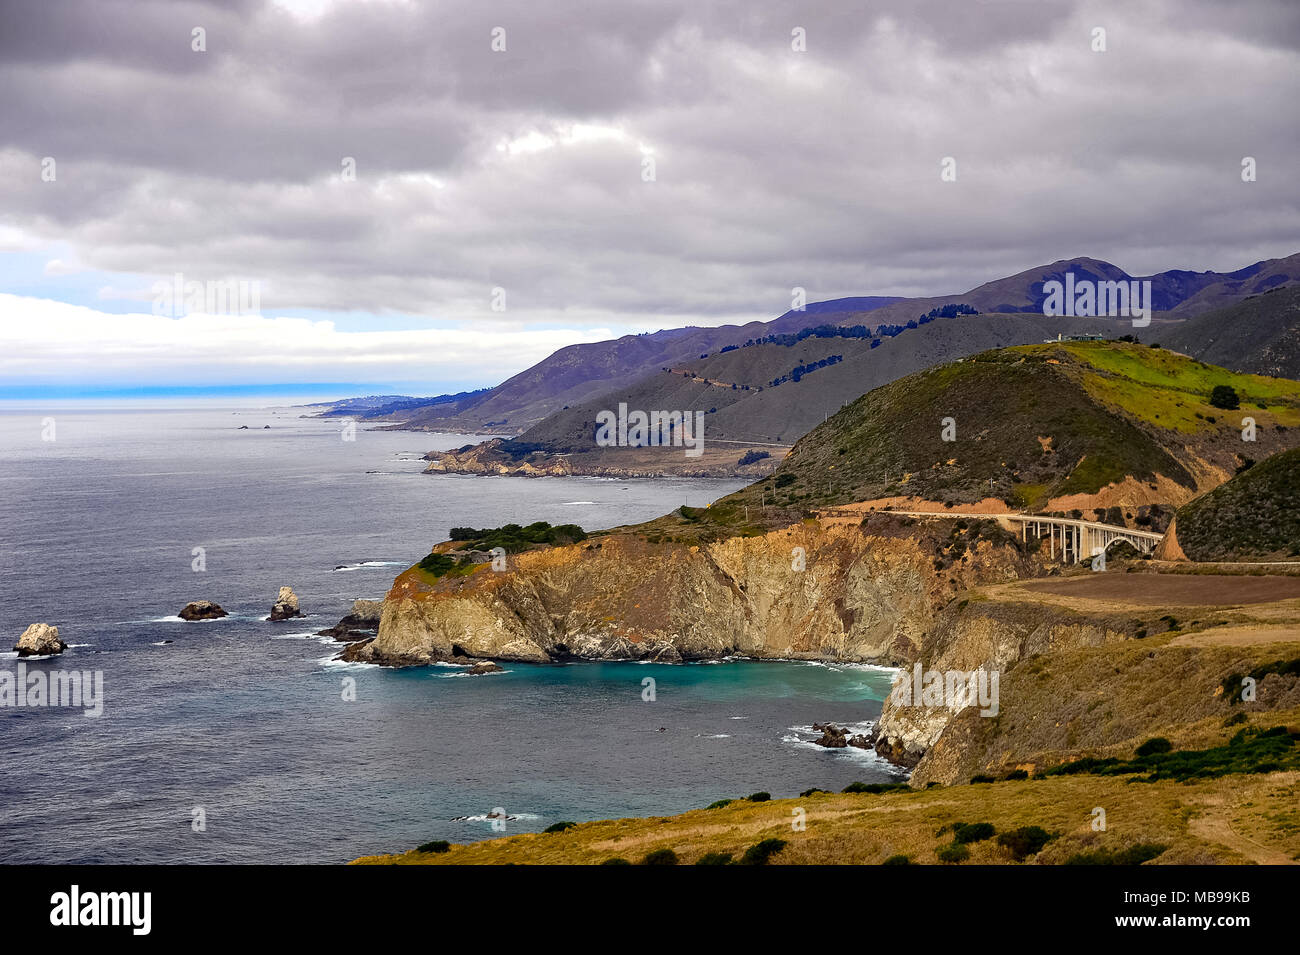 Aerial view of Bixby Creek Bridge, Cabrillo Highway 1, California, USA. Coastal landscape, Pacific ocean, rolling green hills and grey cloud skies Stock Photo